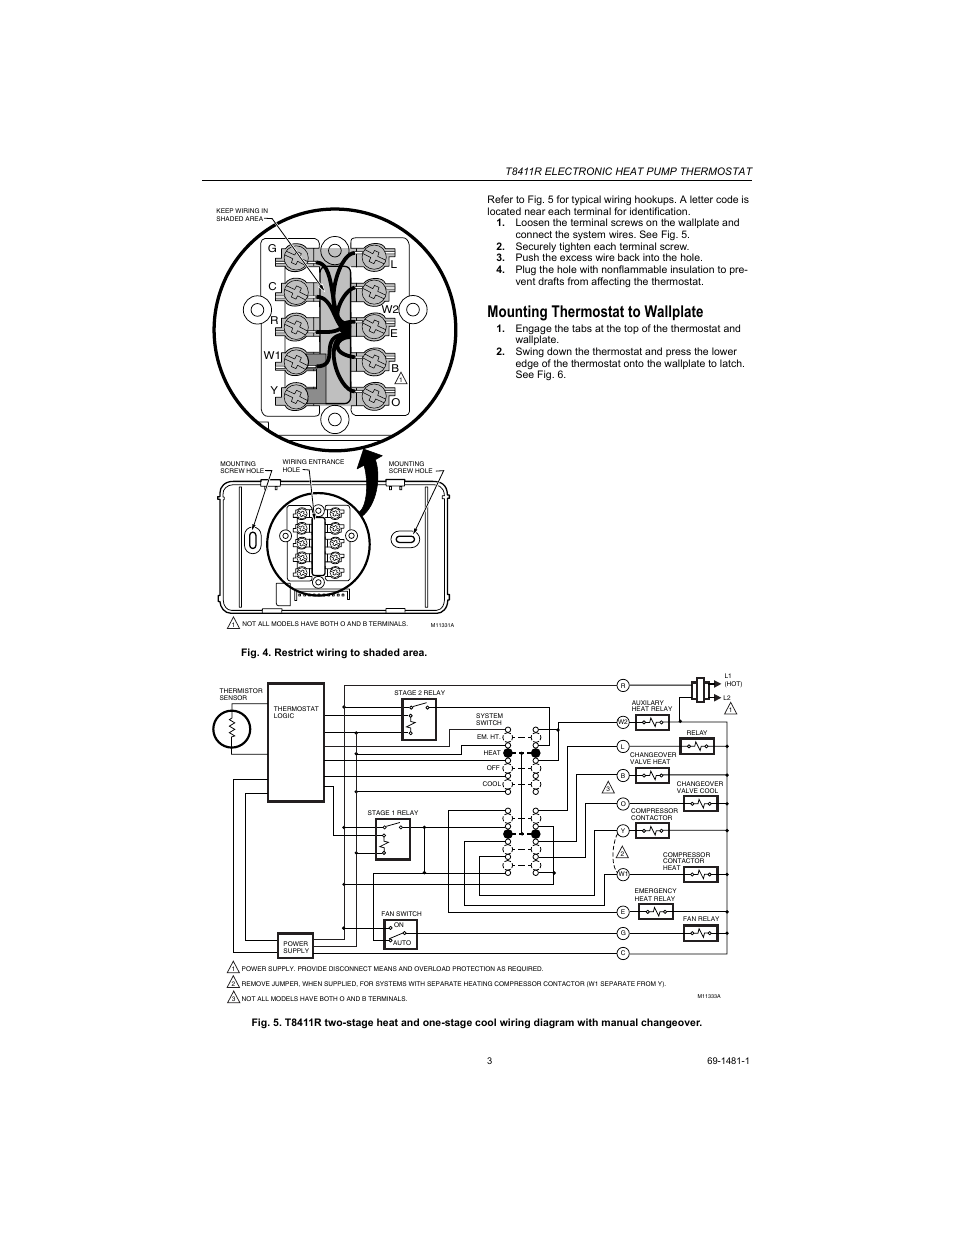 medium resolution of mounting thermostat to wallplate honeywell heat pump thermostat t8411r user manual page 3 6